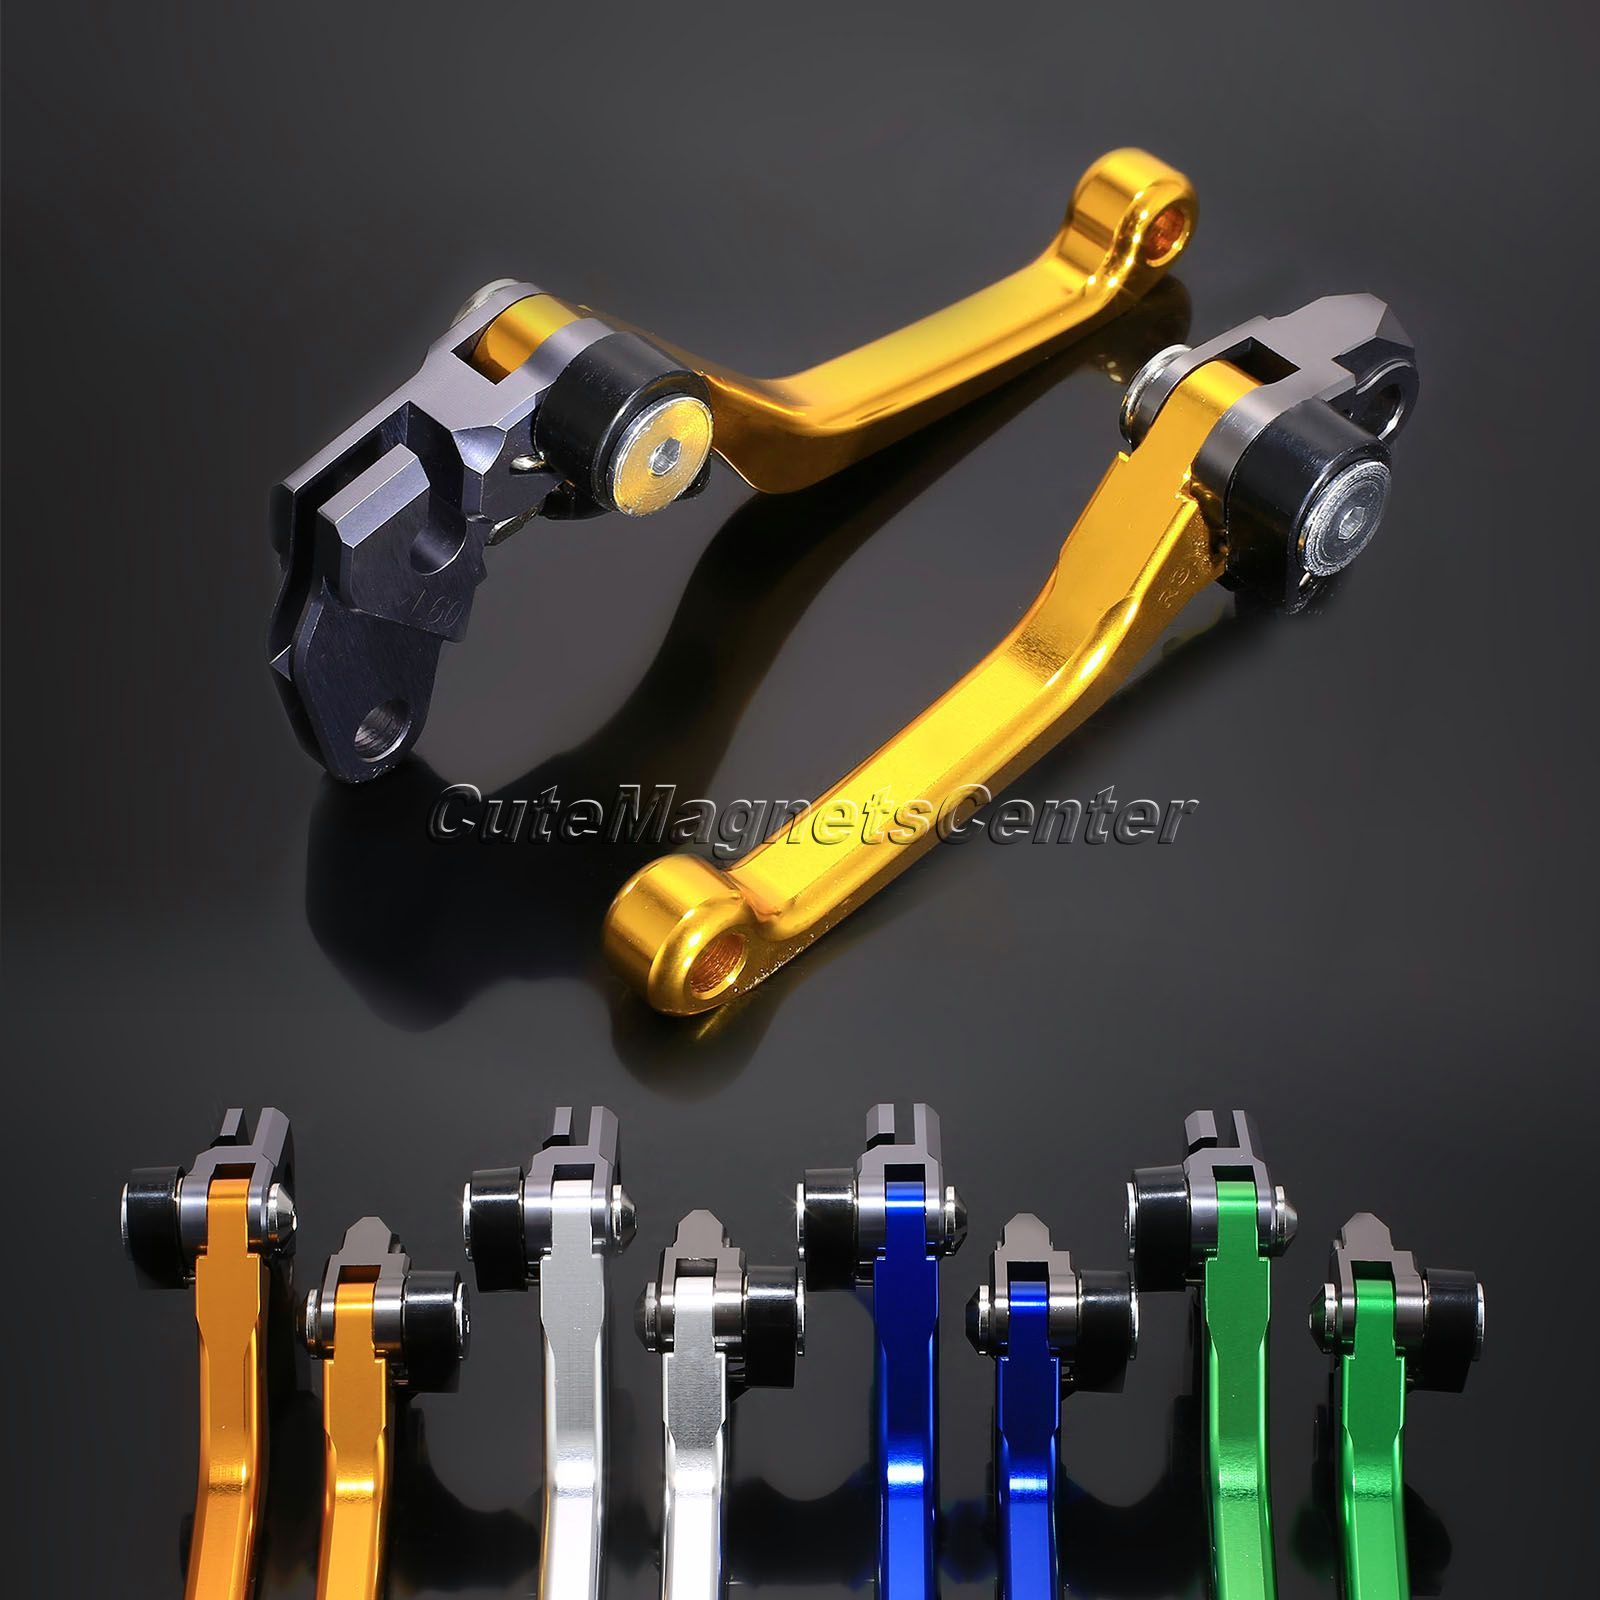 CNC Universal Fit R62M/L20M Motorbike Brake Clutch Lever Cross Country Motorcycle For Kawasaki KX65 85 125 250 250F Suzuki Parts motorcycle silver for victory cross roads custom cross countr kingpin vegas brake clutch lever set